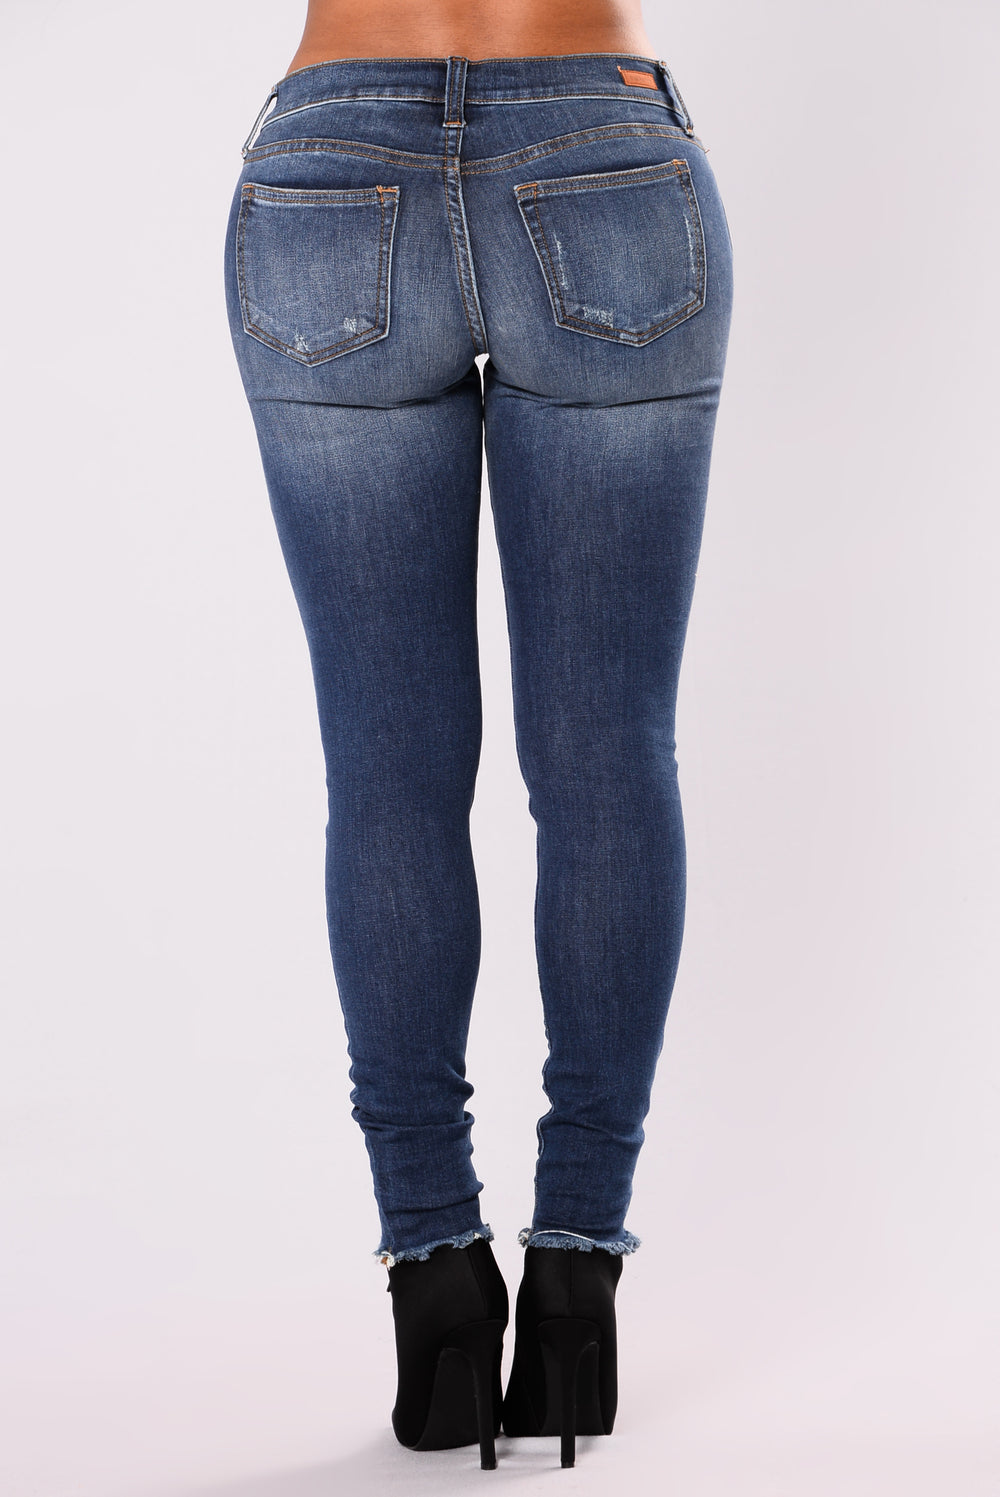 High Voltage Skinny Jeans - Dark Denim